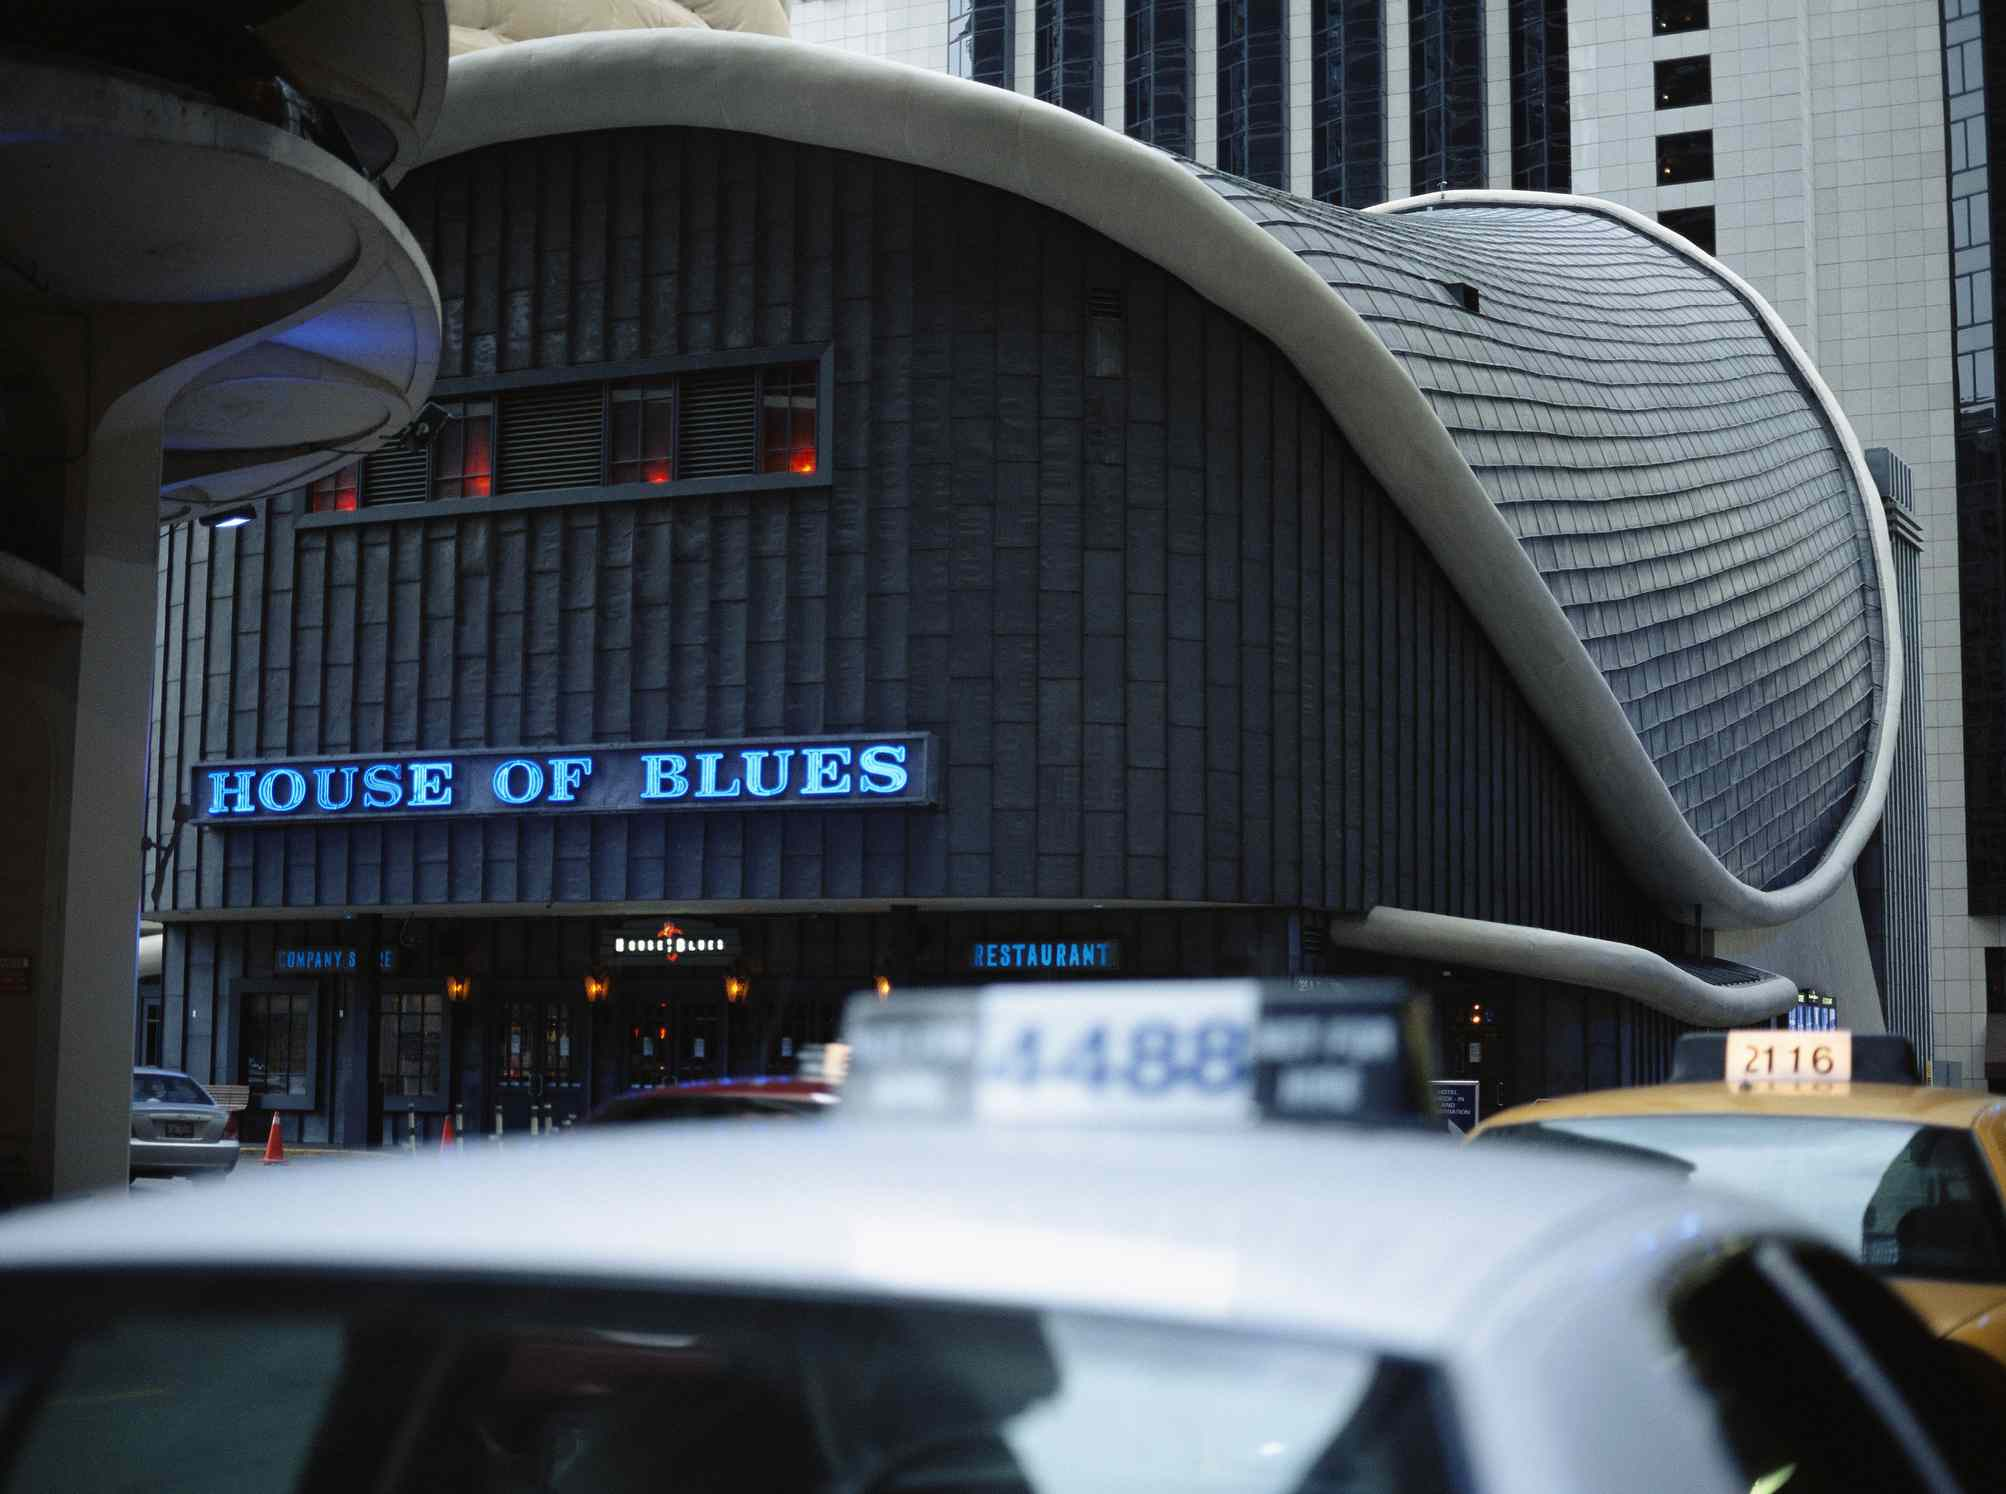 Chicago House of Blues with out of focus cabs in the bottom third of the picture